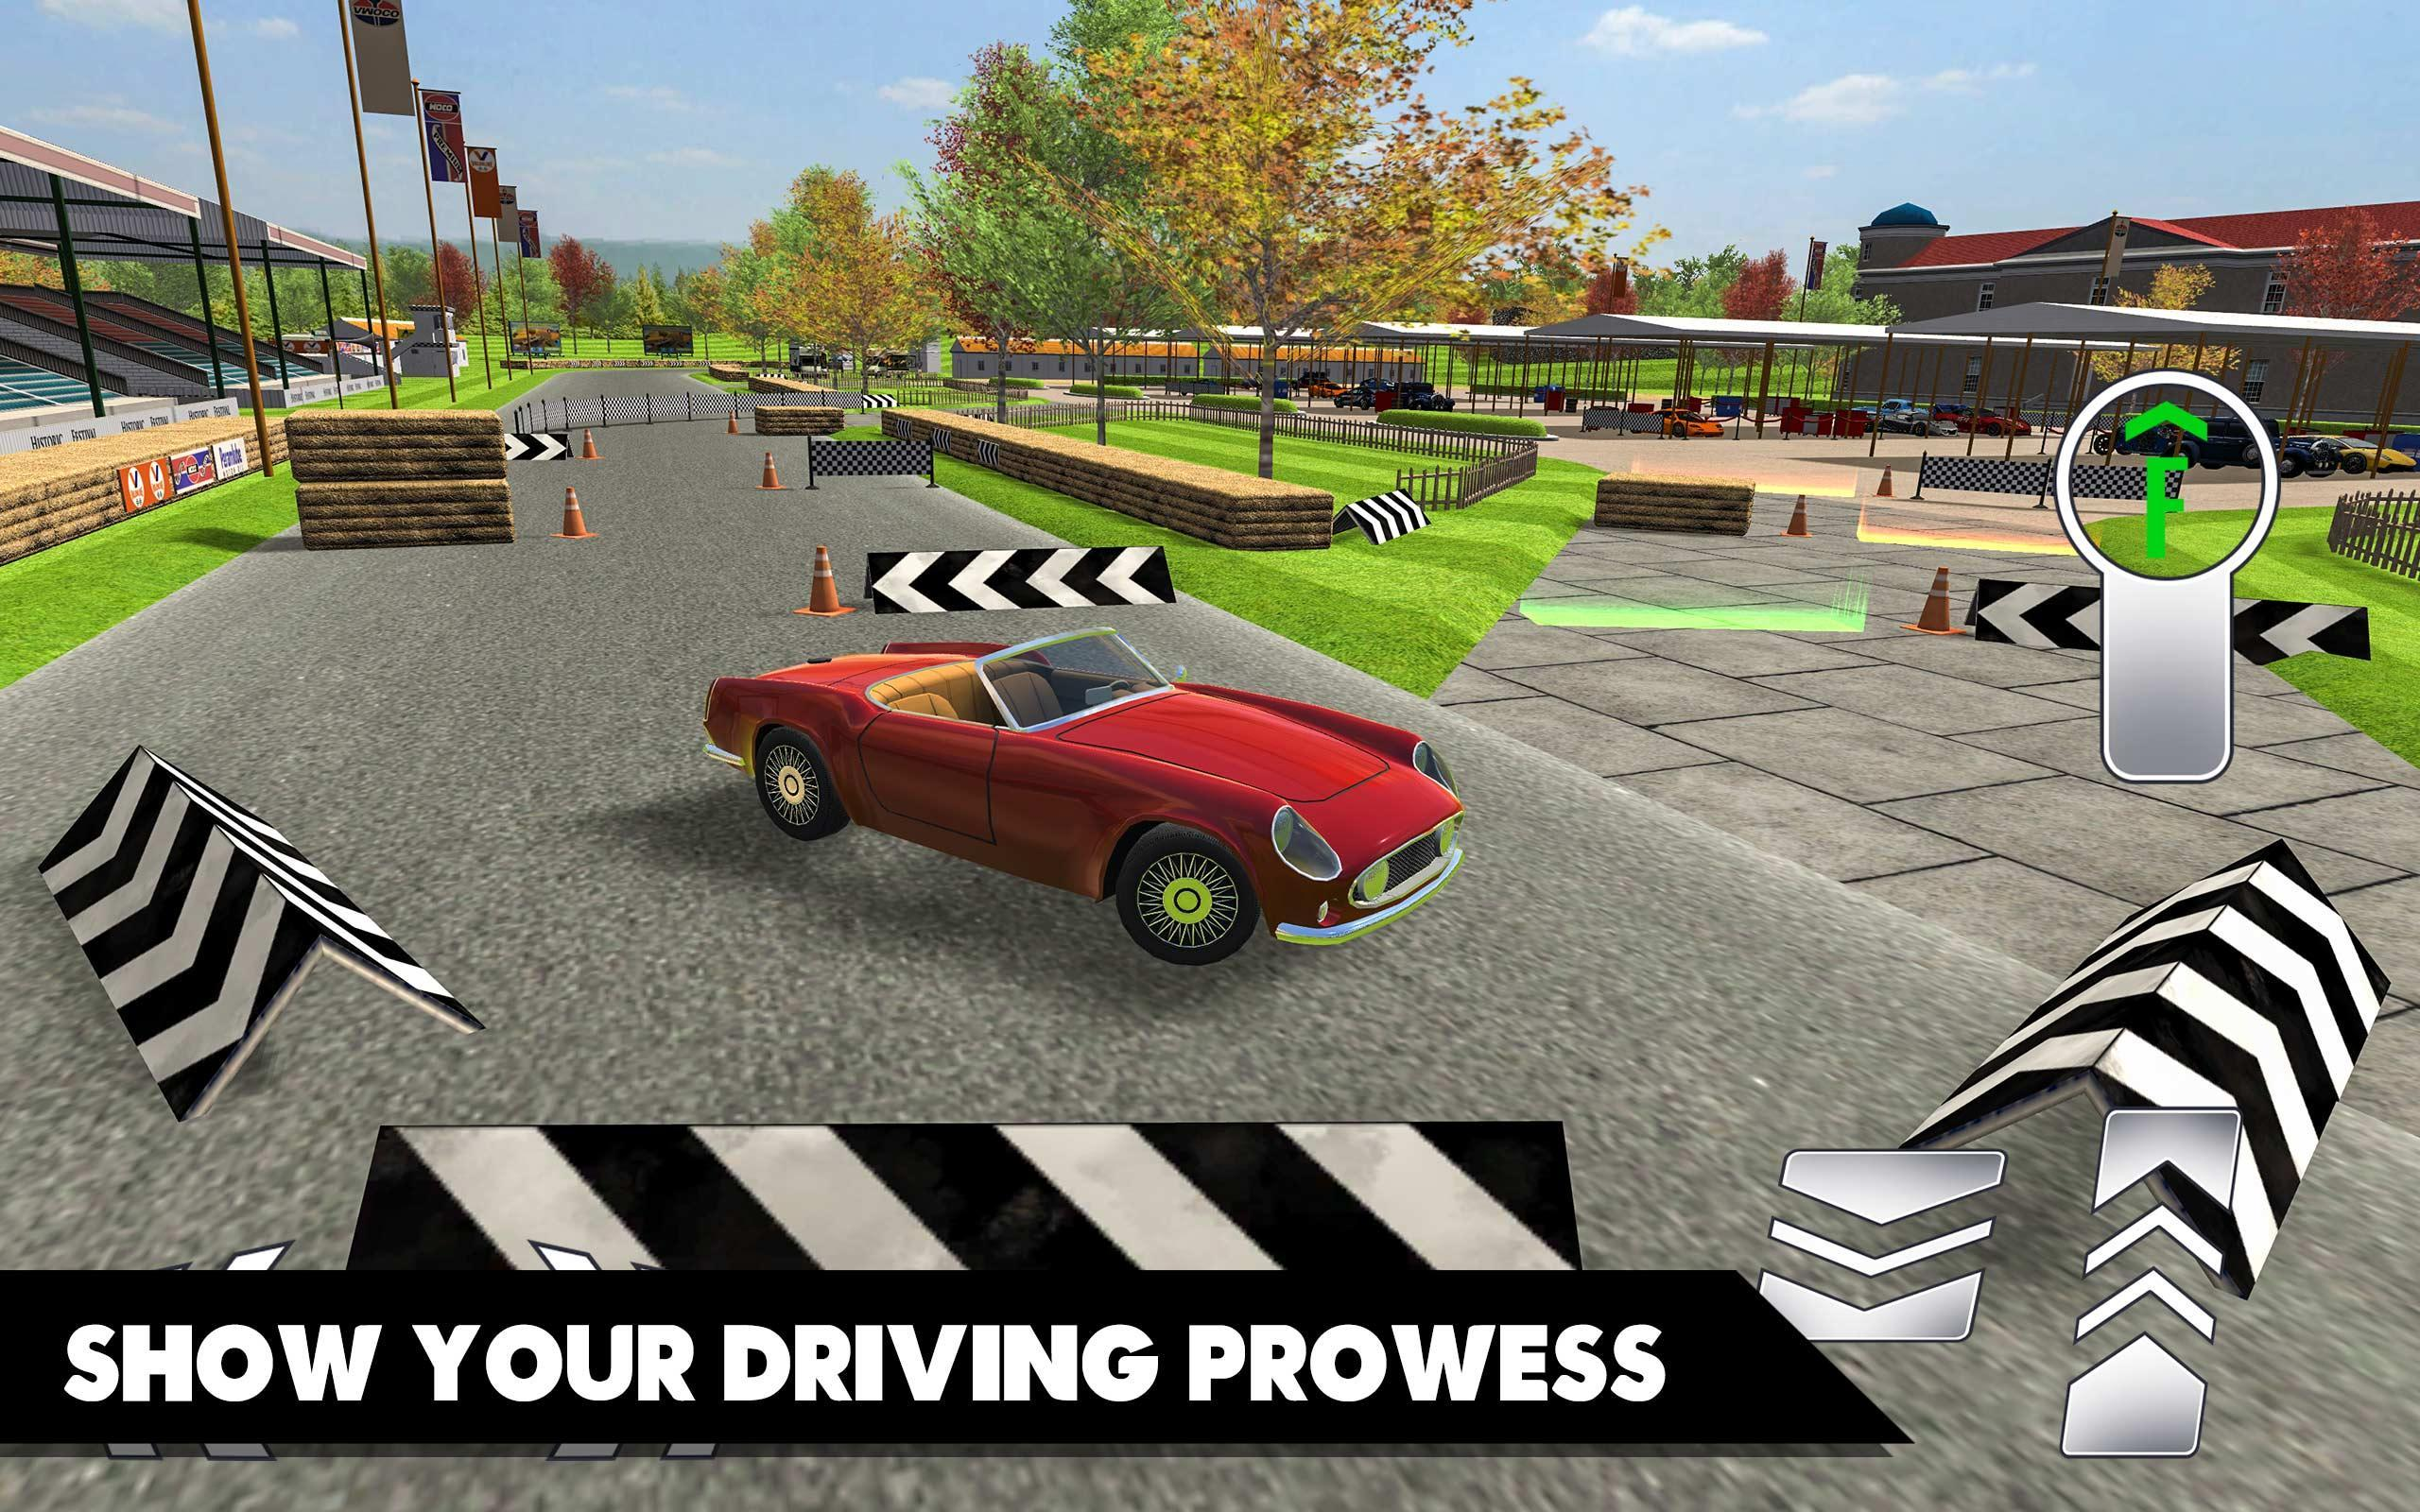 Driving Legends: The Car Story for Android - APK Download